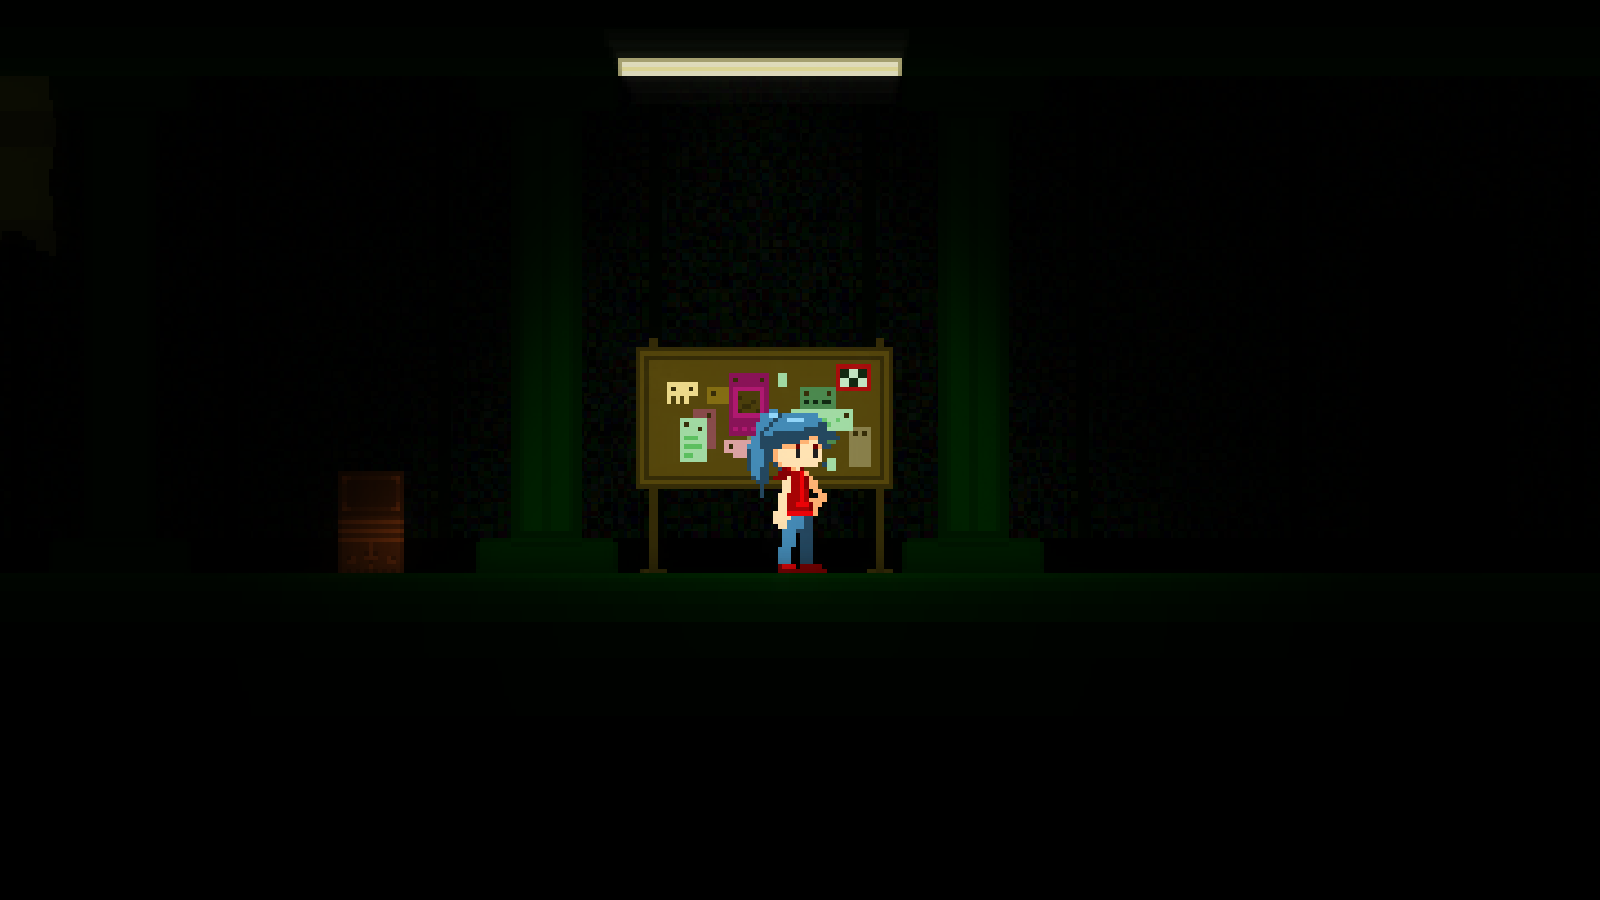 Seen a reference to Yume Nikki in Dreaming Sarah This game 1600x900